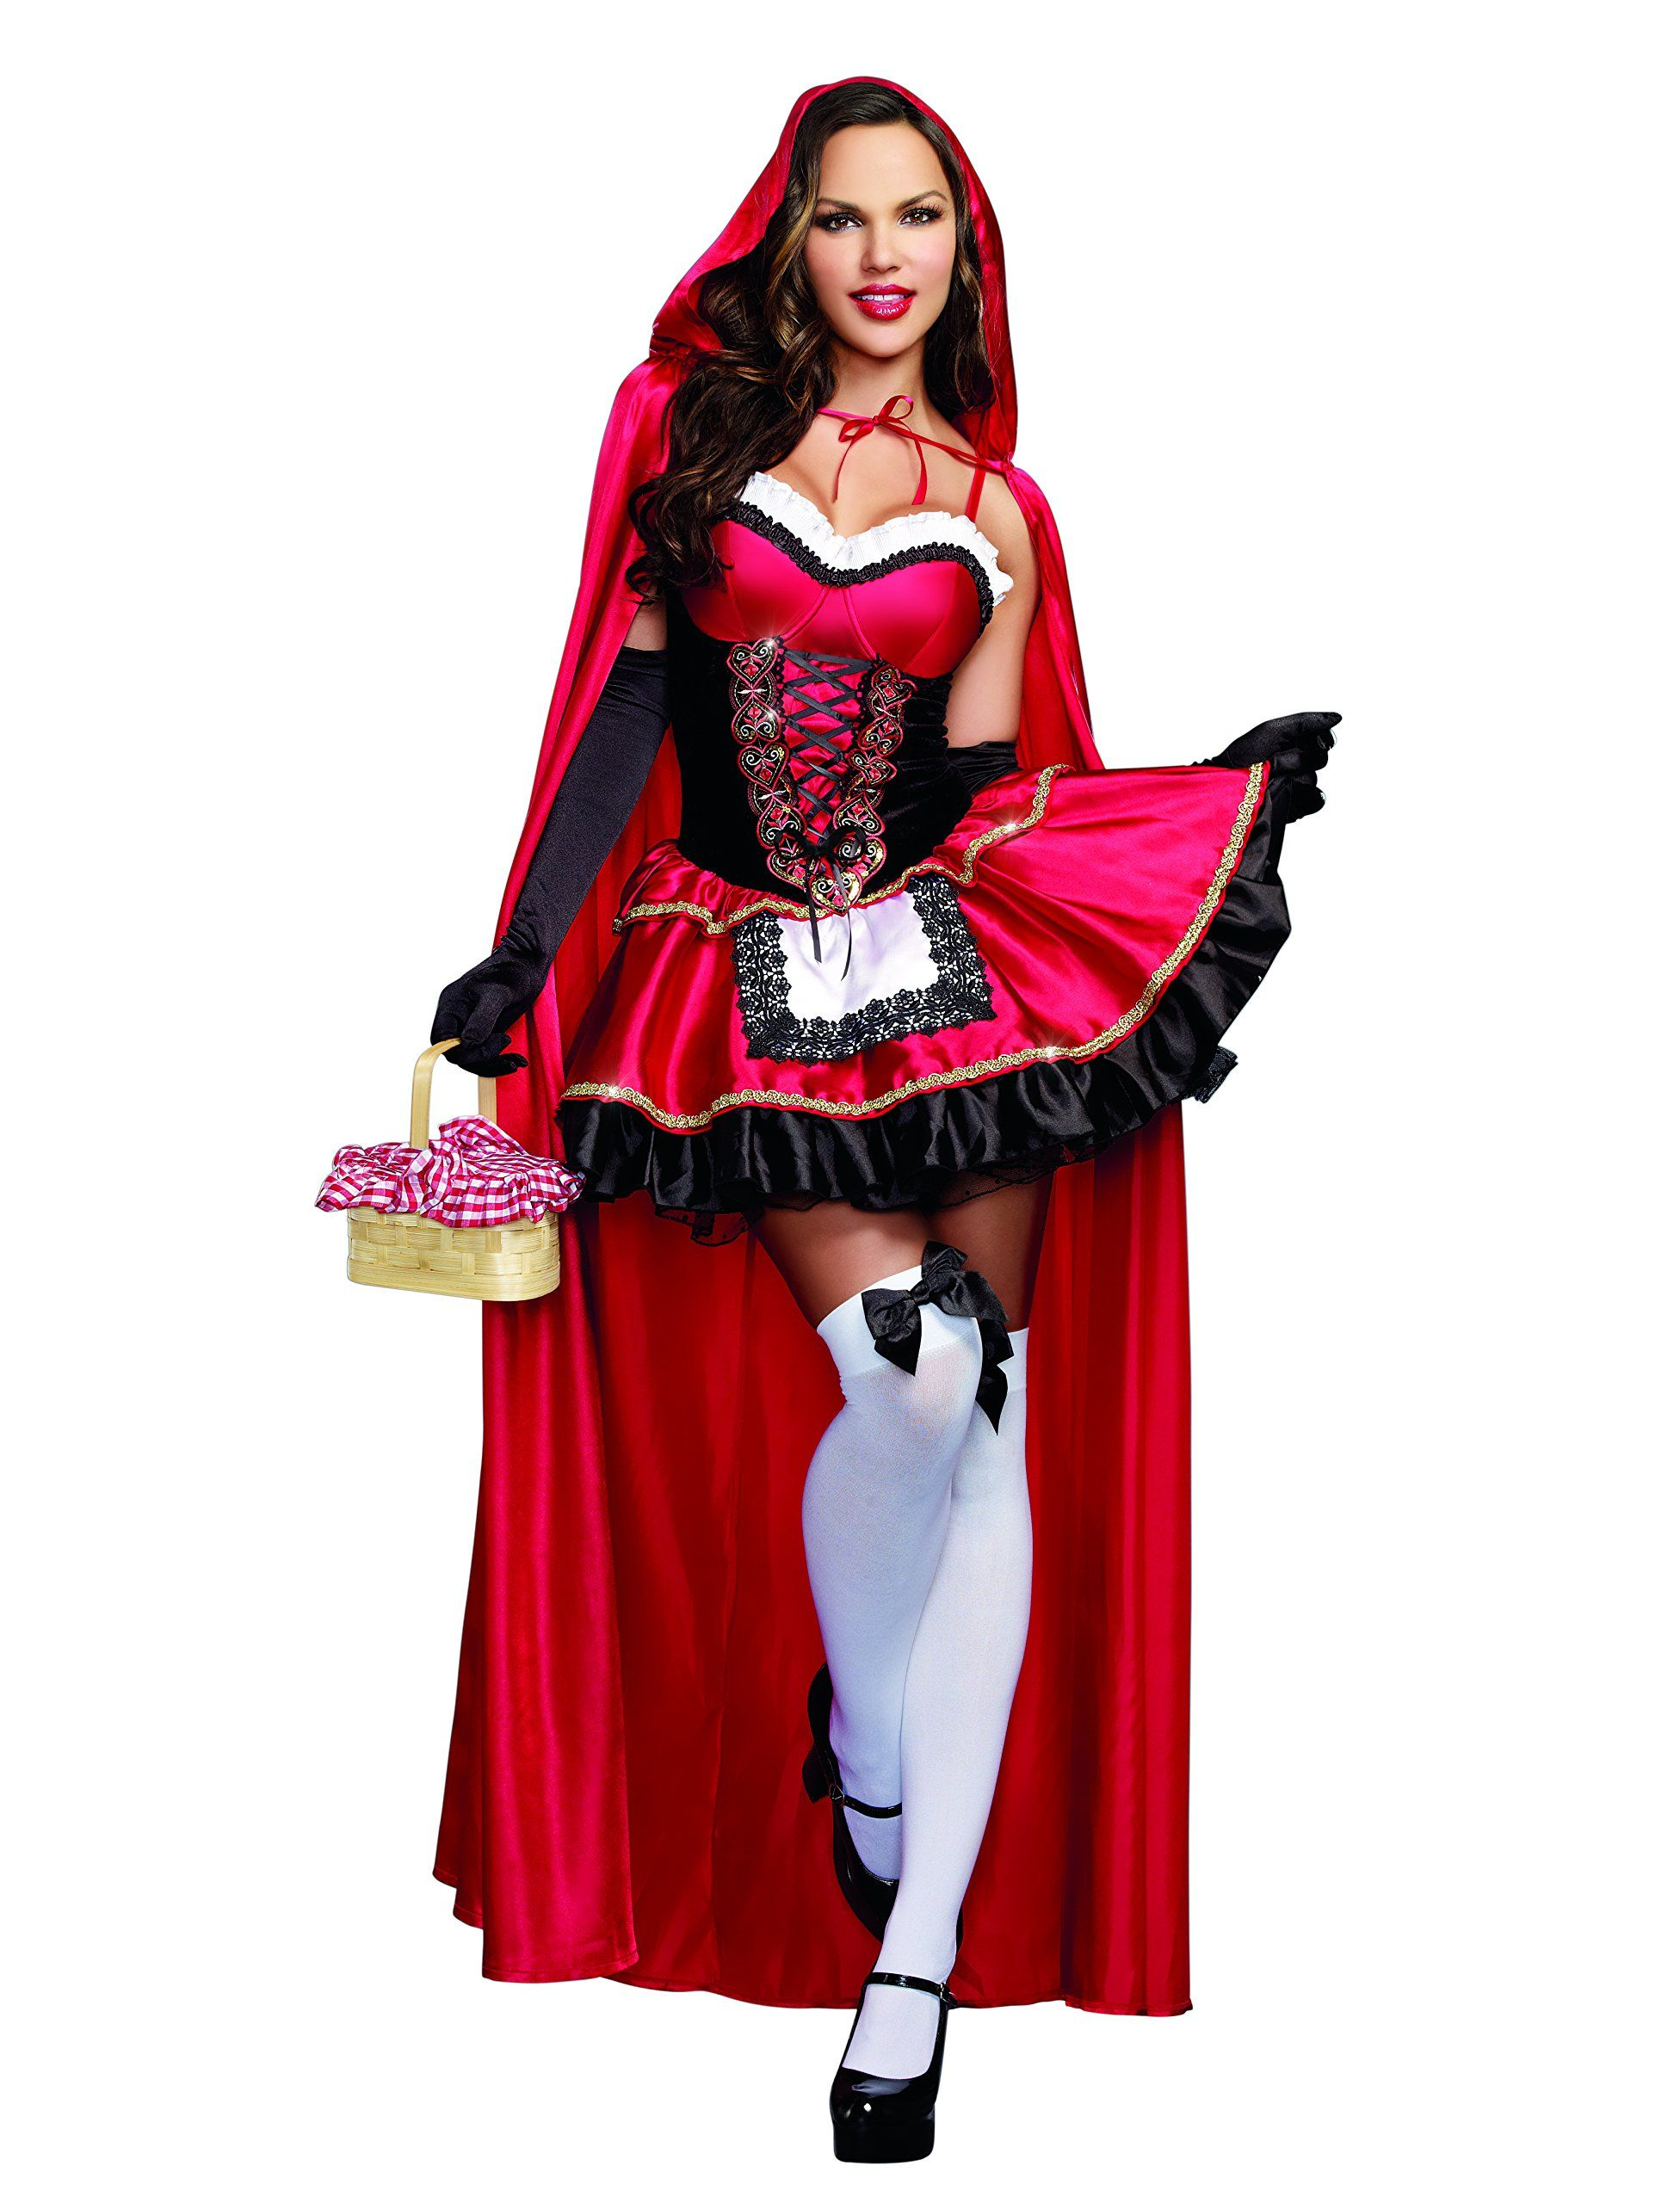 Amazon.com: Dreamgirl Women's Little Red Riding Hood: Clothing ...